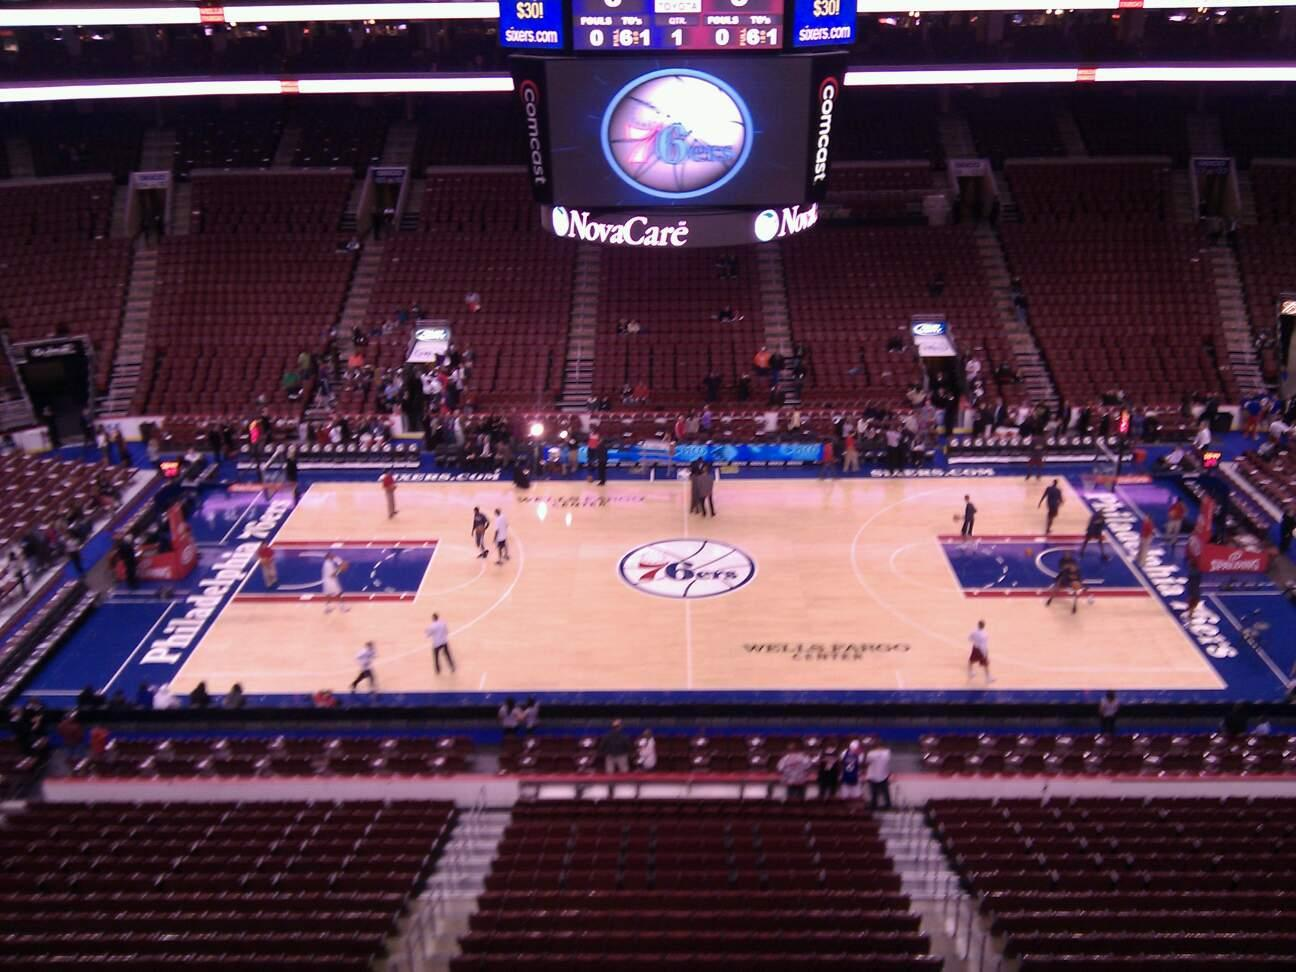 Wells Fargo Center Section 213 Row 2 Seat 7